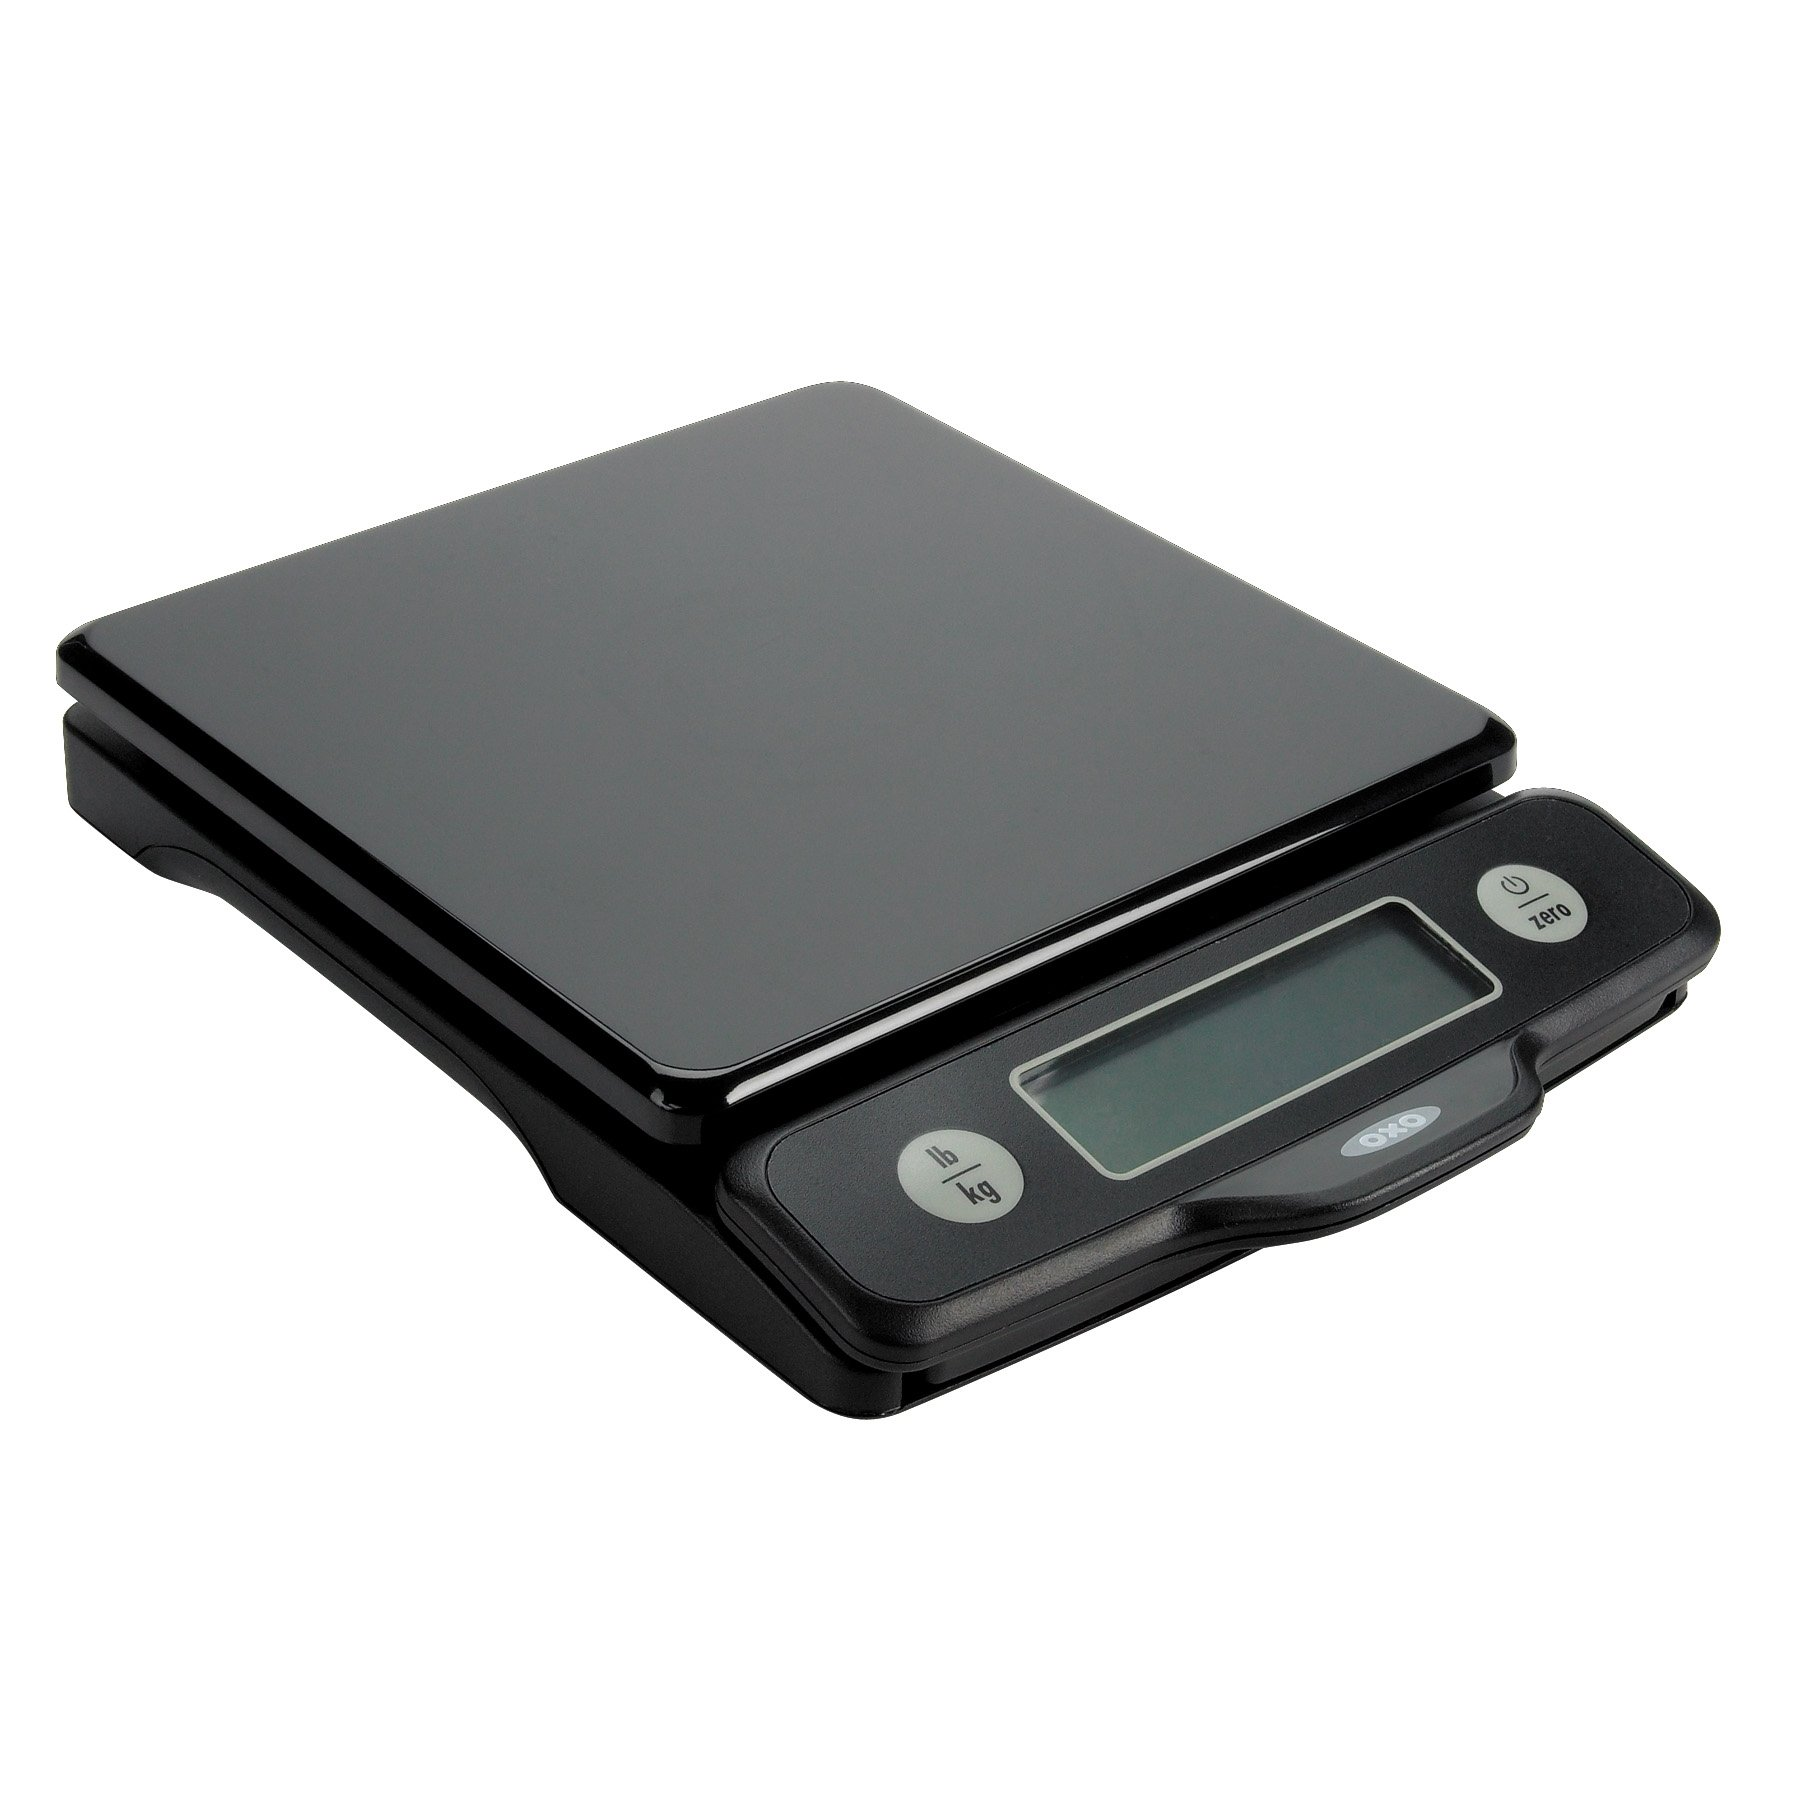 OXO Good Grips 5 Lb Food Scale with Pull-Out Display by OXO